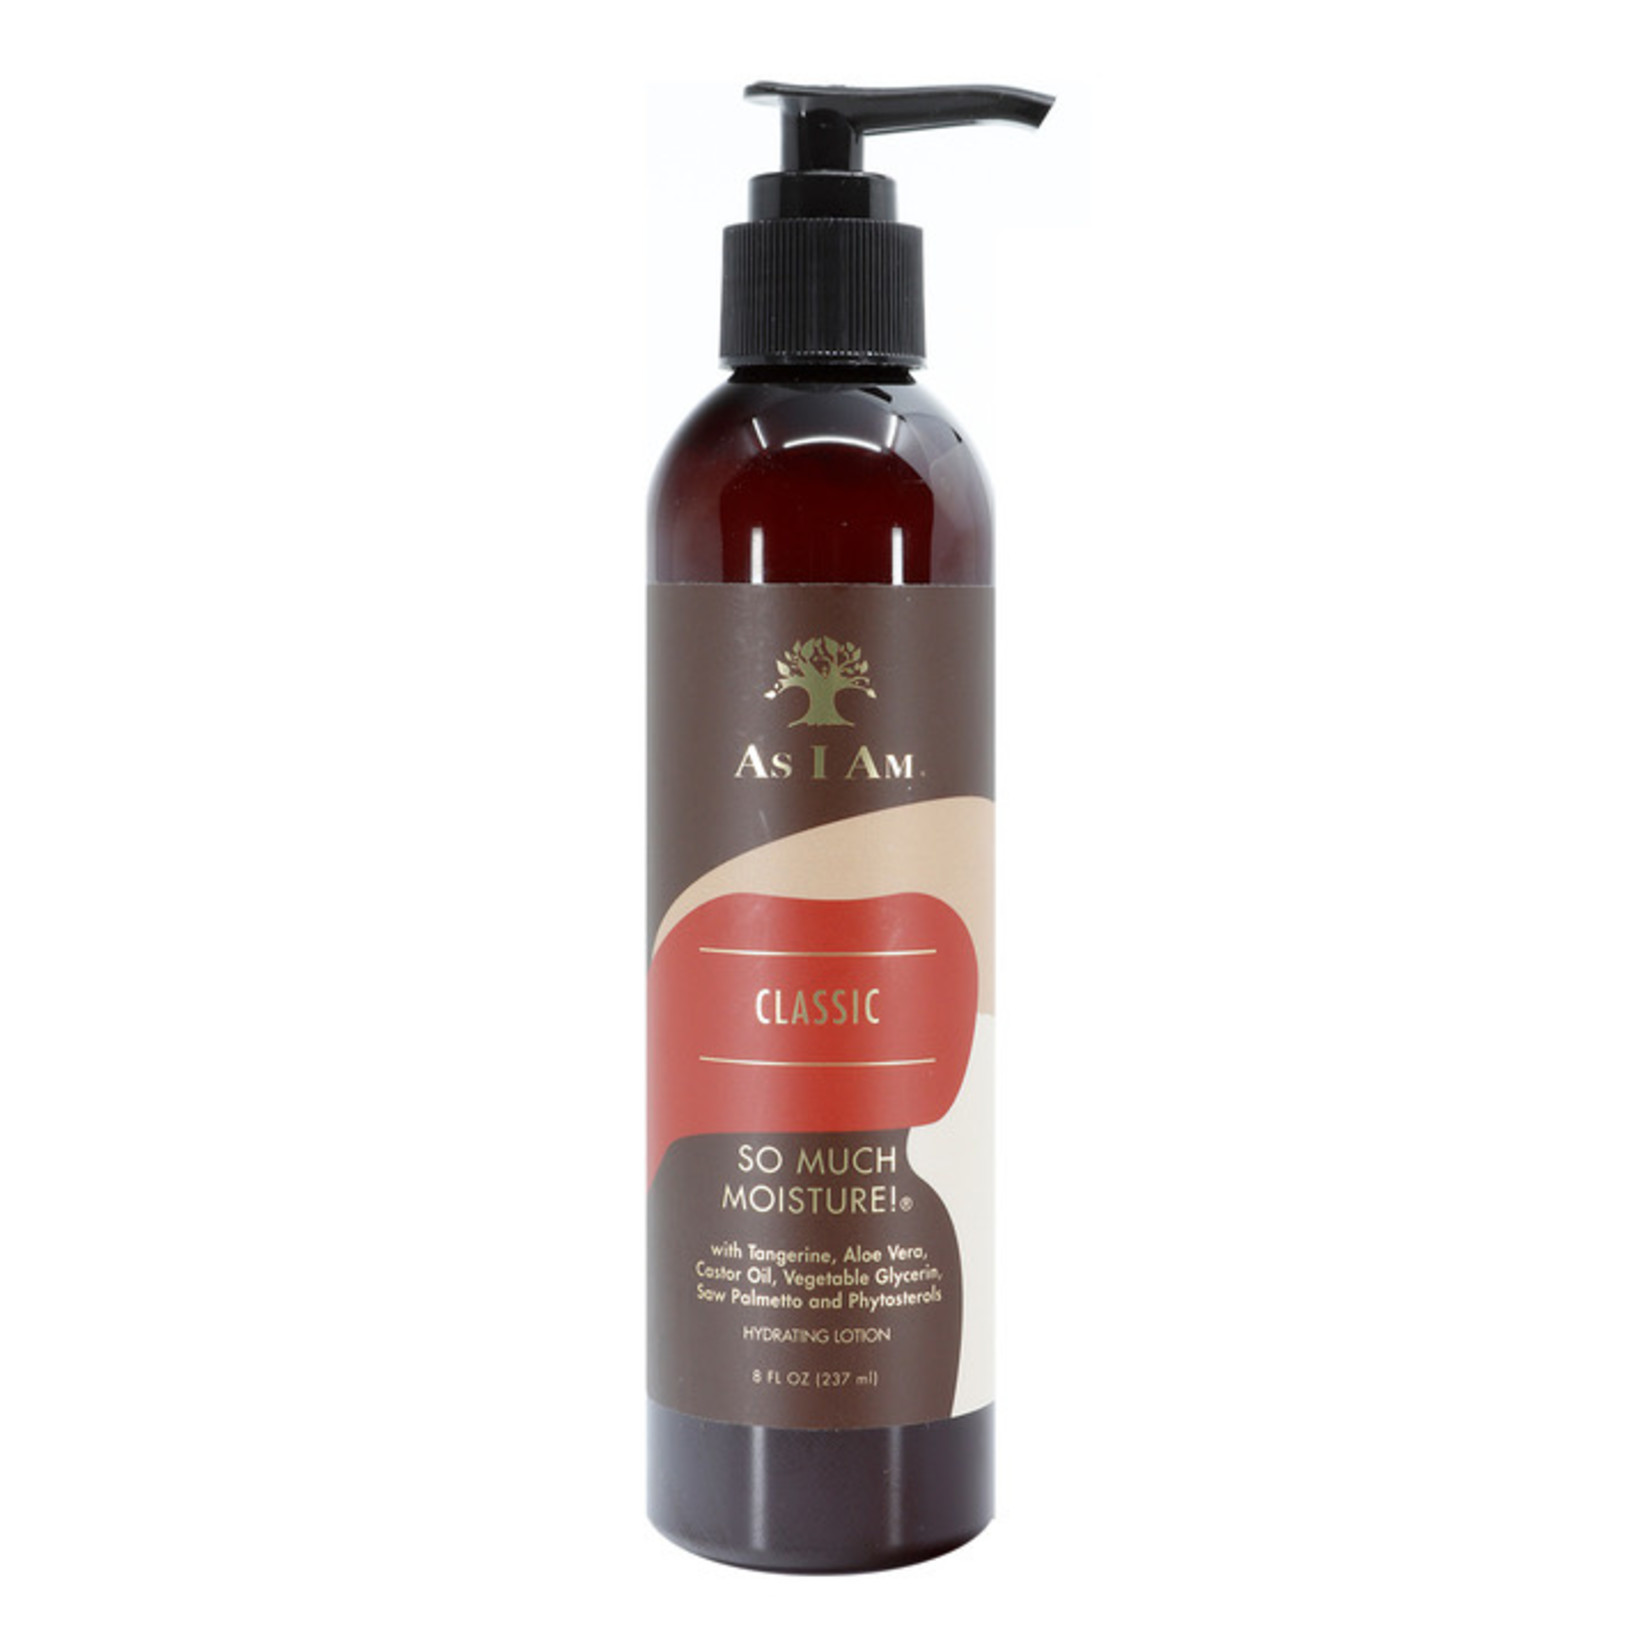 AS I AM AS I AM SO MUCH MOISTURE HYDRATING LOTION [8OZ]